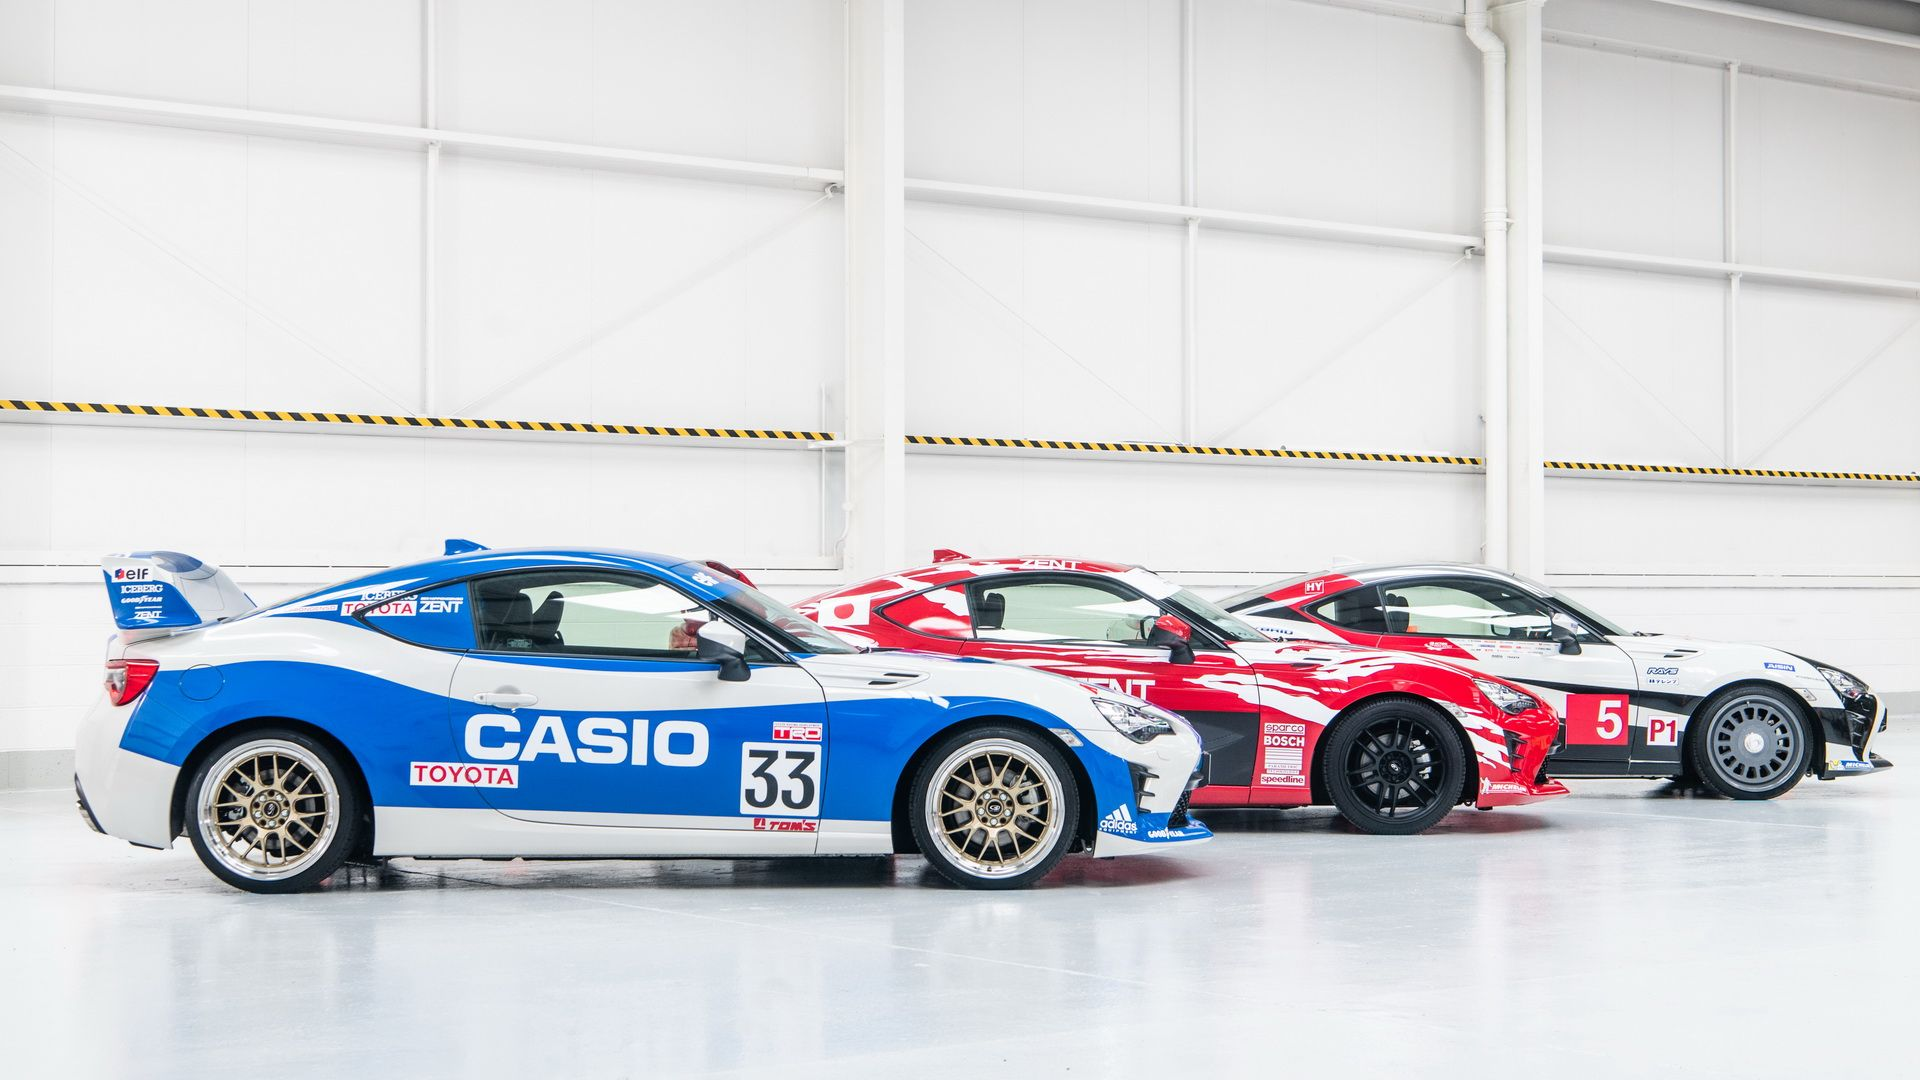 toyota-gt86-heritage-livery-24-hours-of-le-mans-20